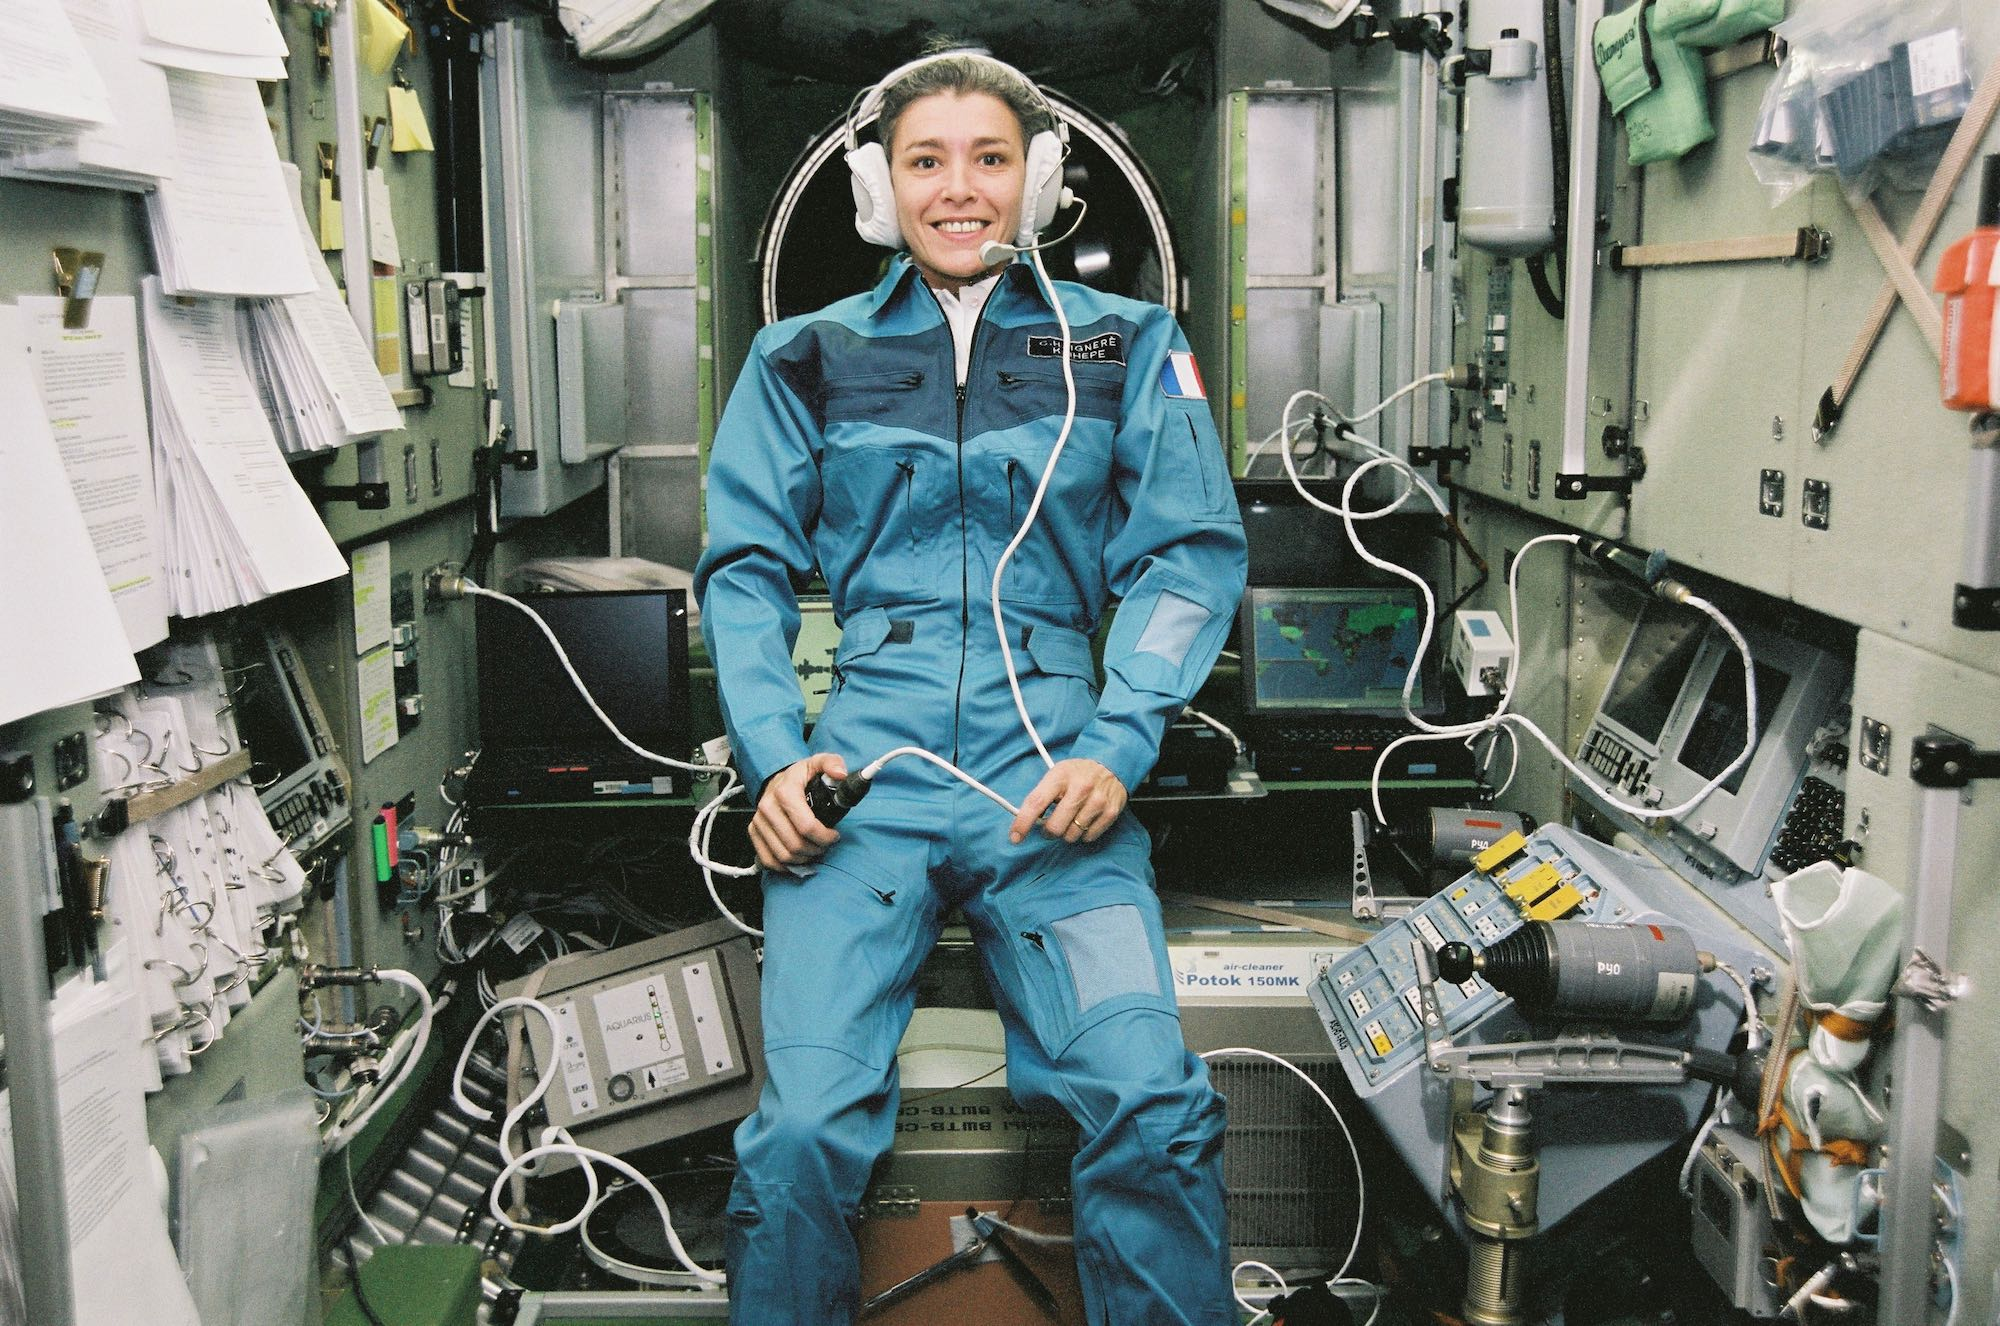 Claudie Haigneré aboard the ISS during her Andromeda mission in 2001.  Credit: CNES/Claudie Haigneré